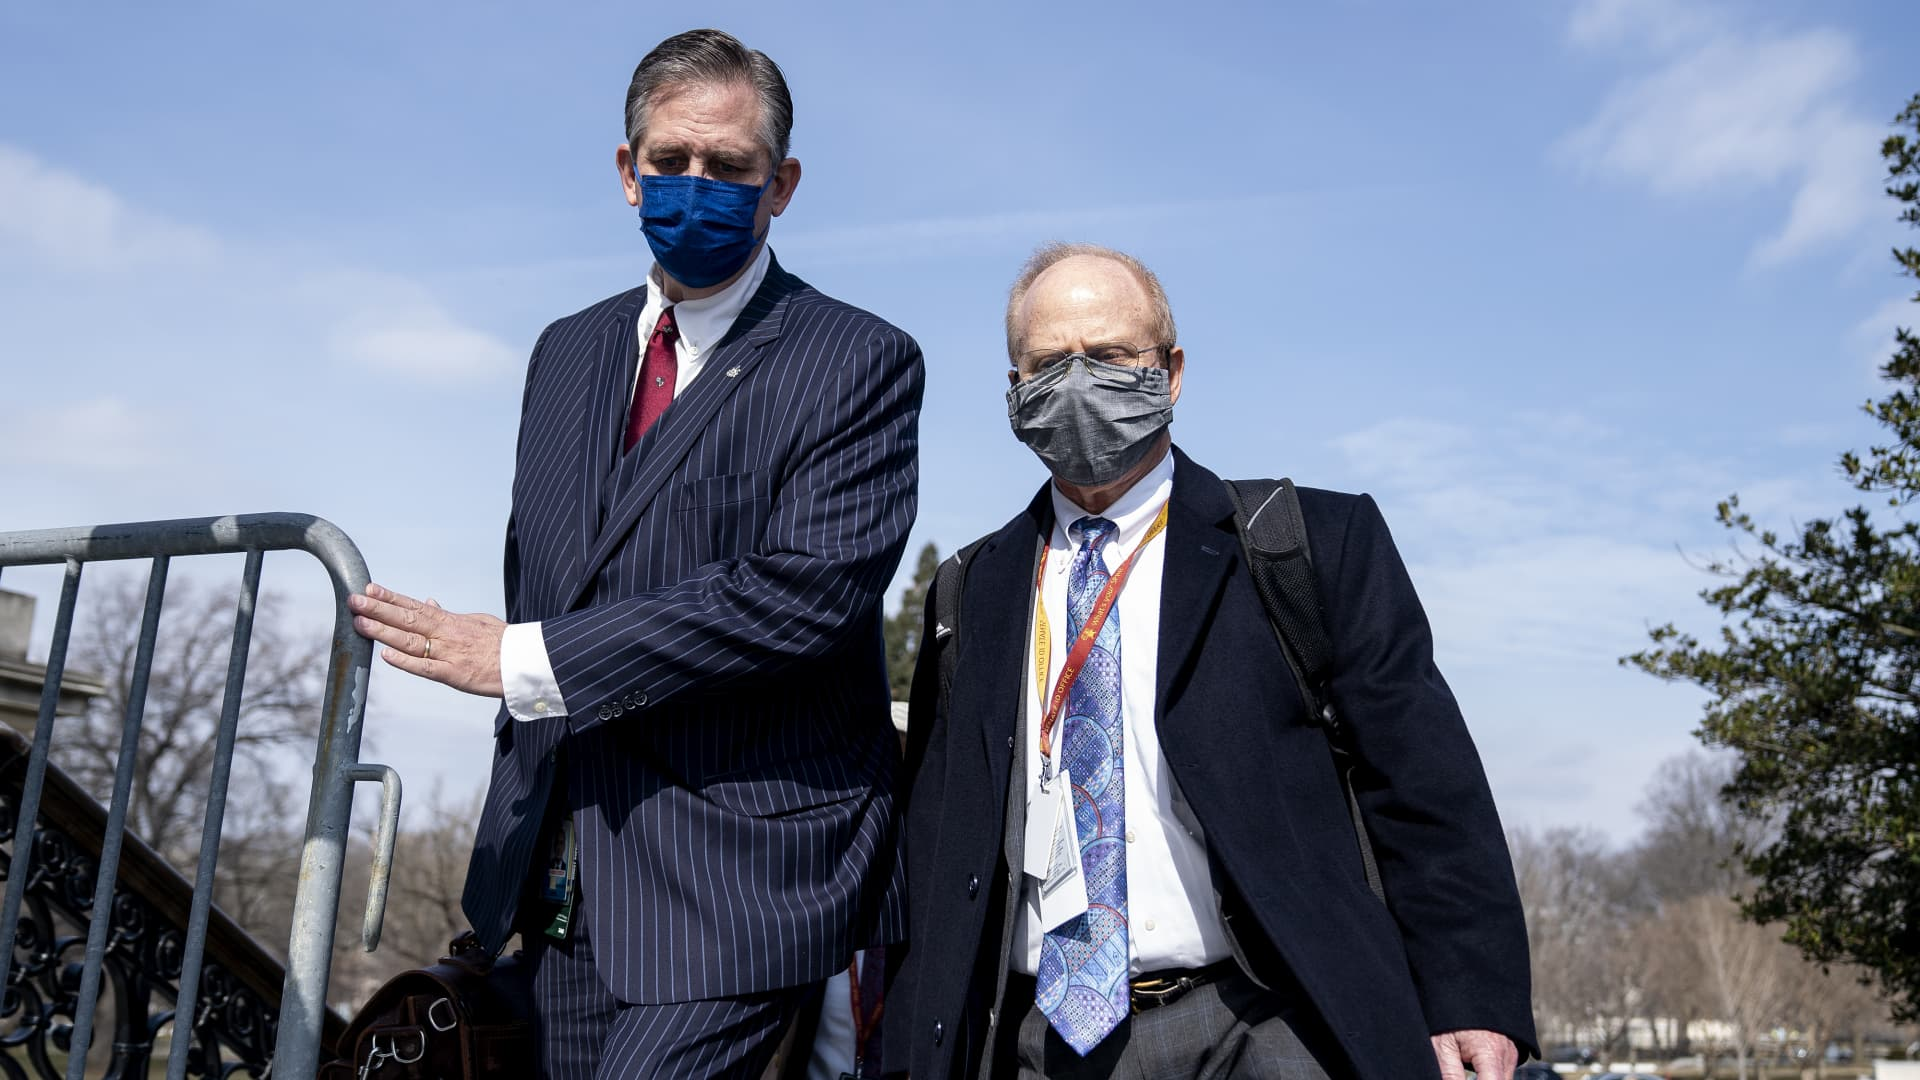 Defense attorneys for Donald Trump, Bruce Castor, left, and David Schoen wear protective masks while arriving to the U.S. Capitol in Washington, D.C., on Wednesday, Feb. 10, 2021.